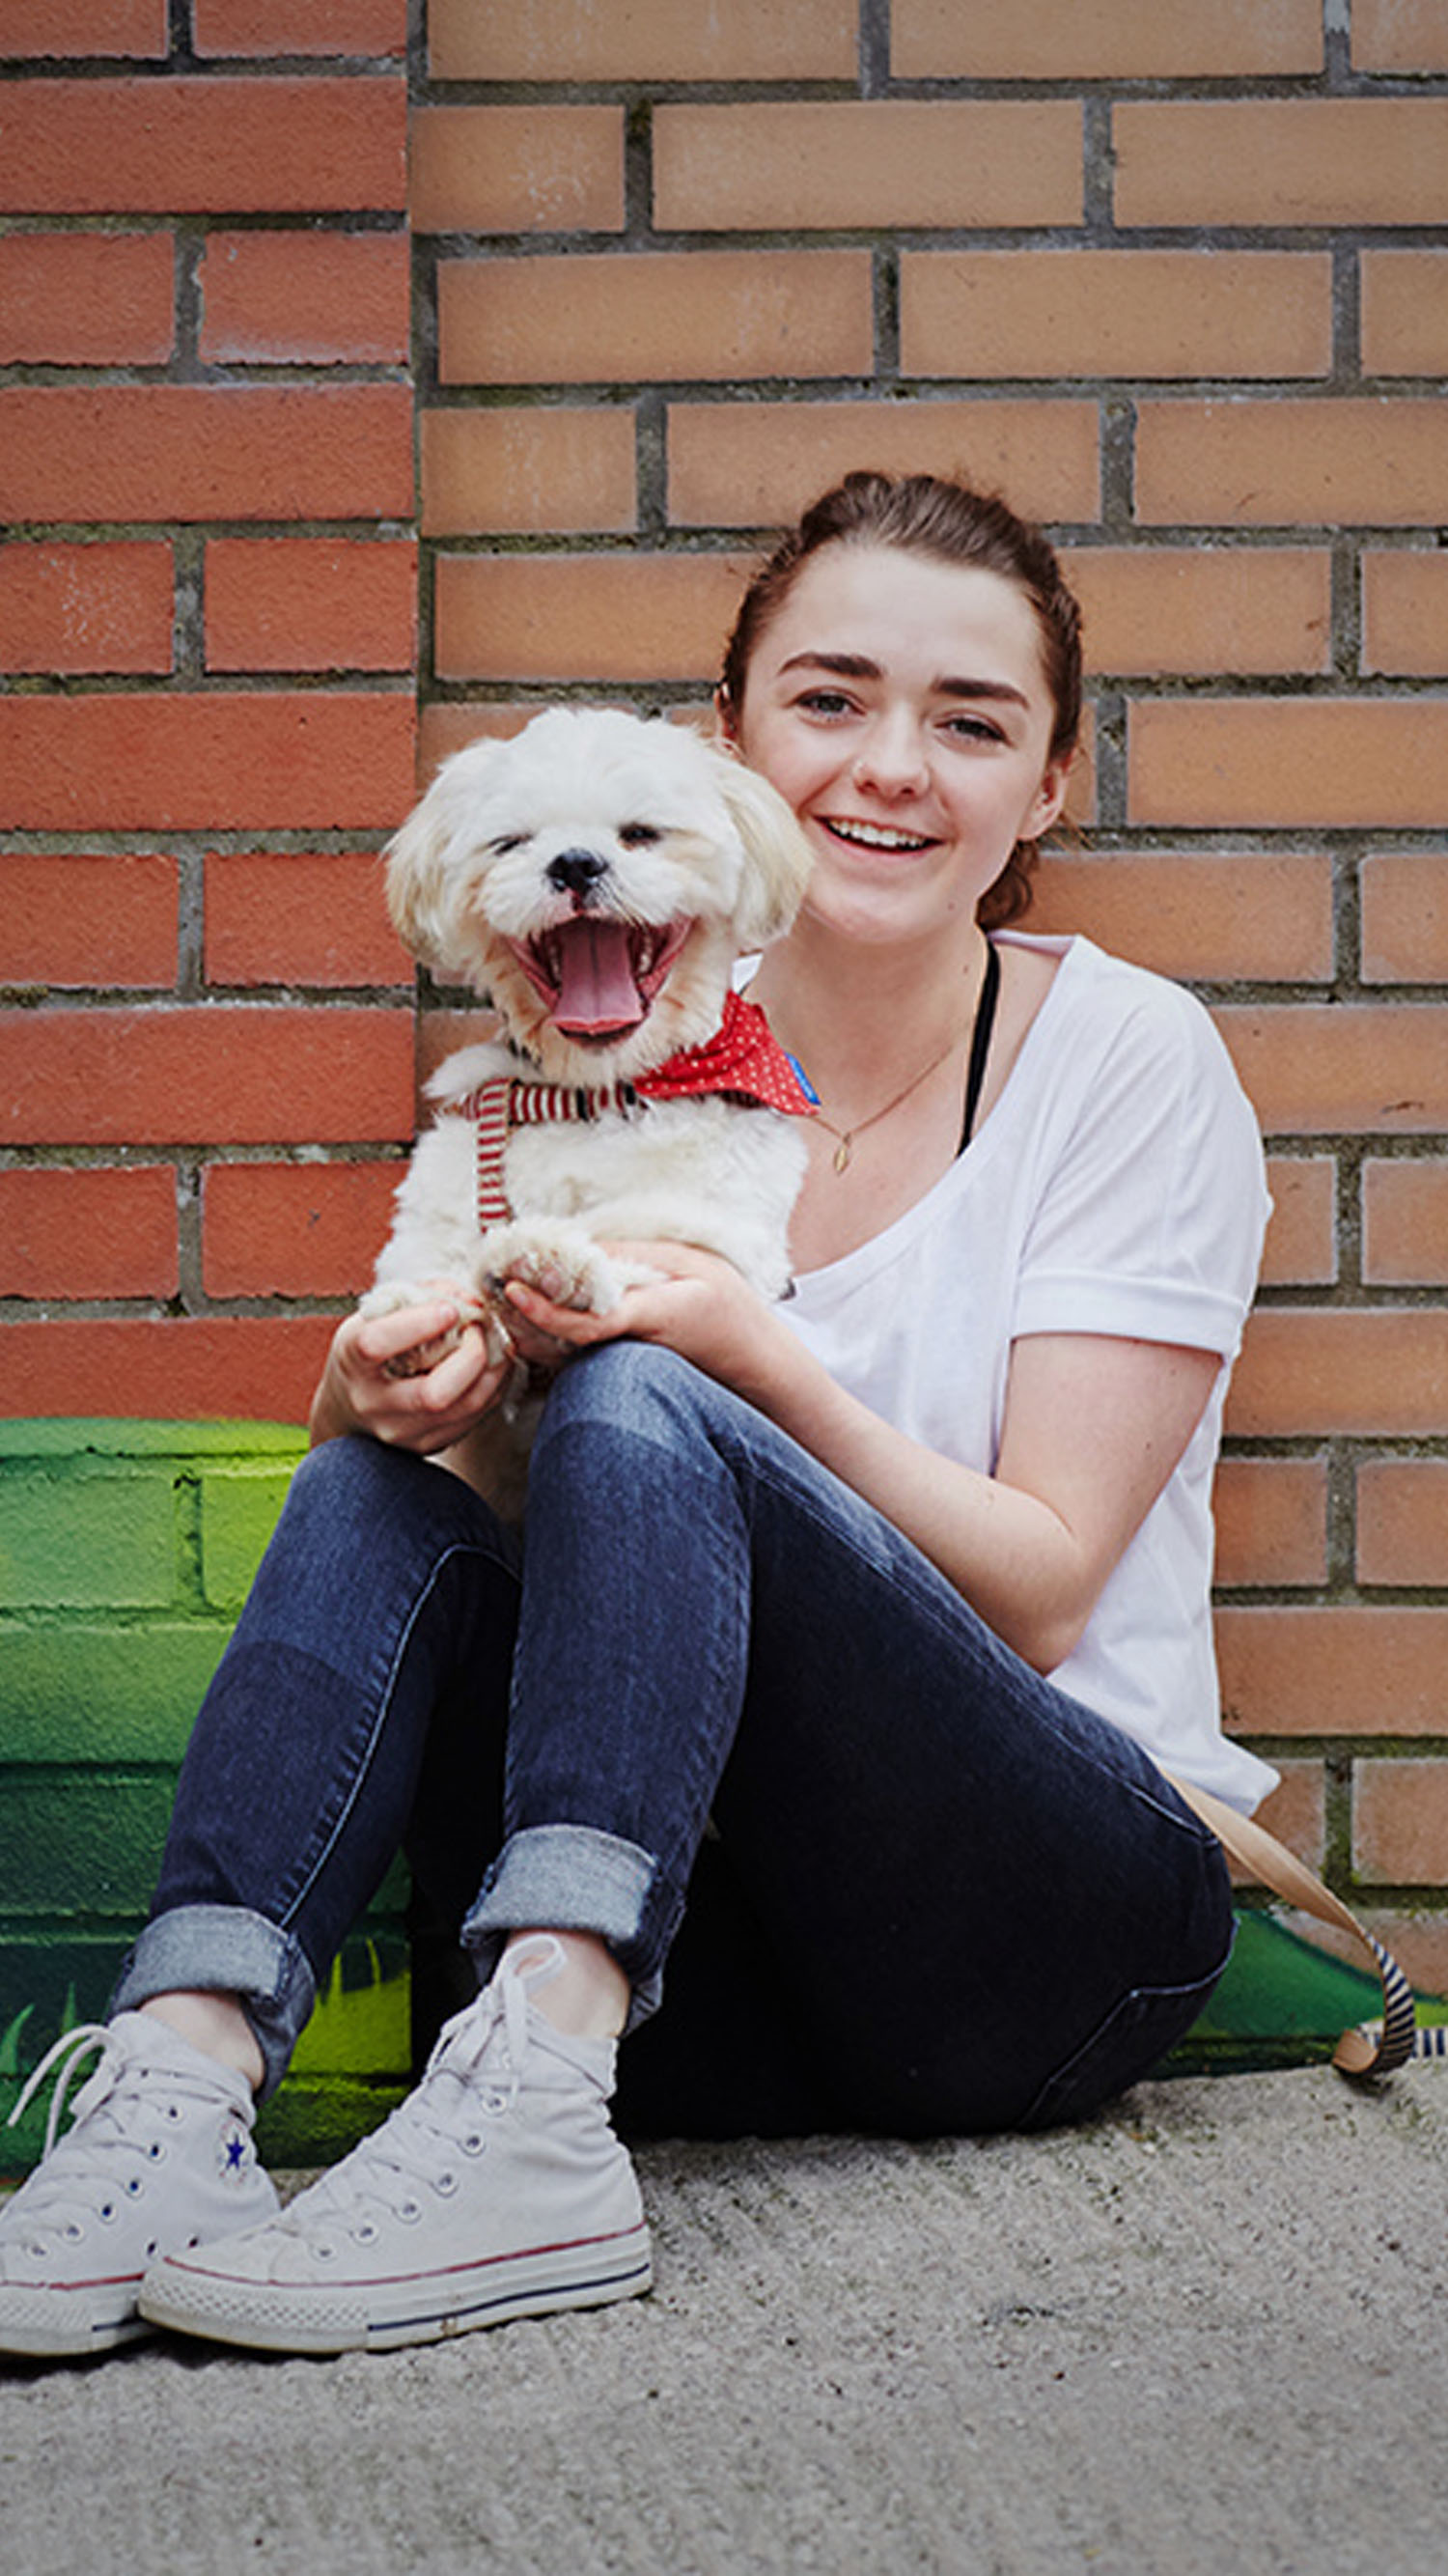 1500x2668 - Maisie Williams Wallpapers 27